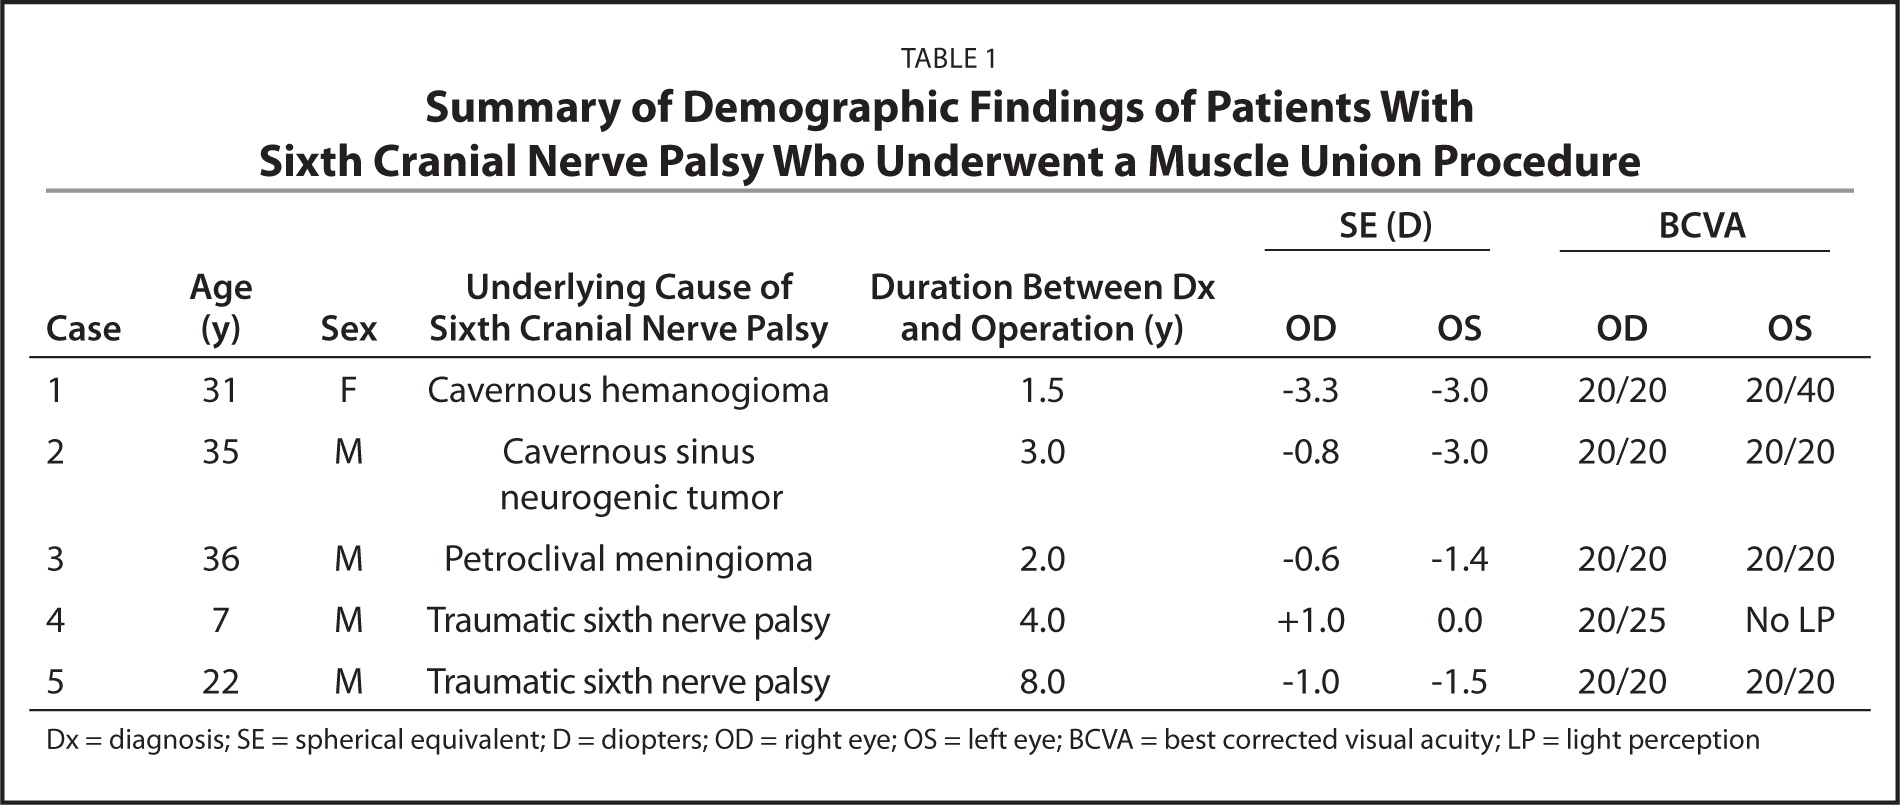 Summary of Demographic Findings of Patients With Sixth Cranial Nerve Palsy Who Underwent a Muscle Union Procedure